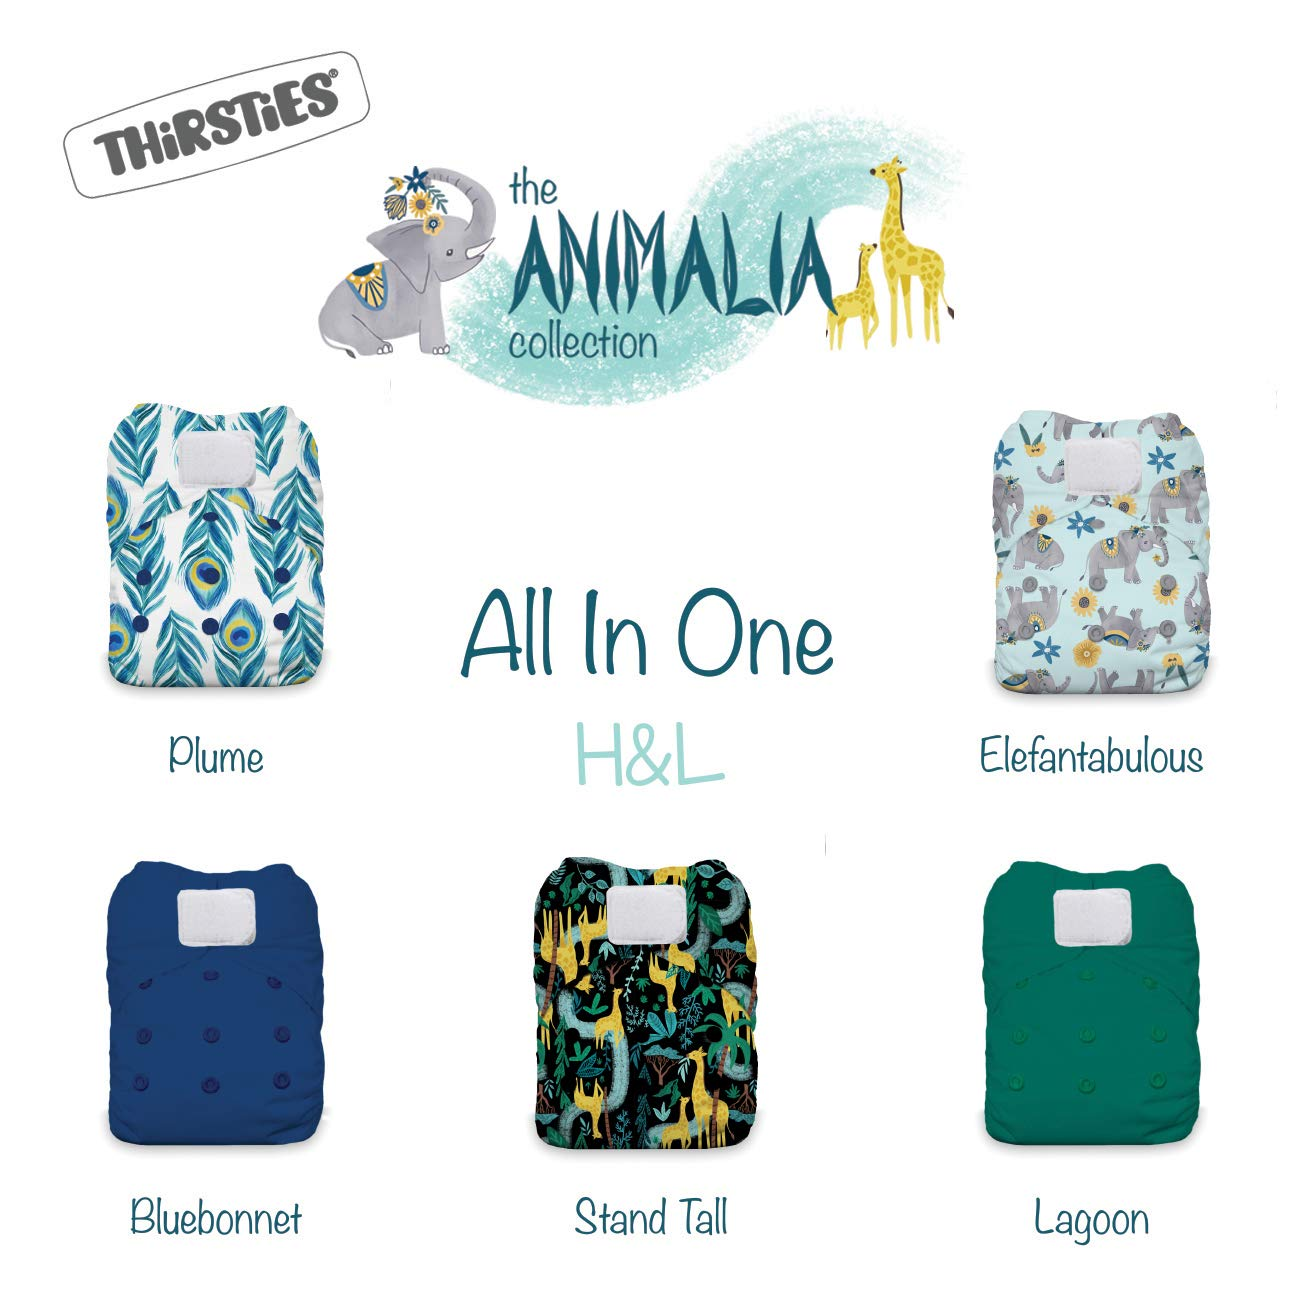 Thirsties Animalia Cloth Diaper Collection Package, One Size All in One Hook & Loop Cloth Diaper, Animalia